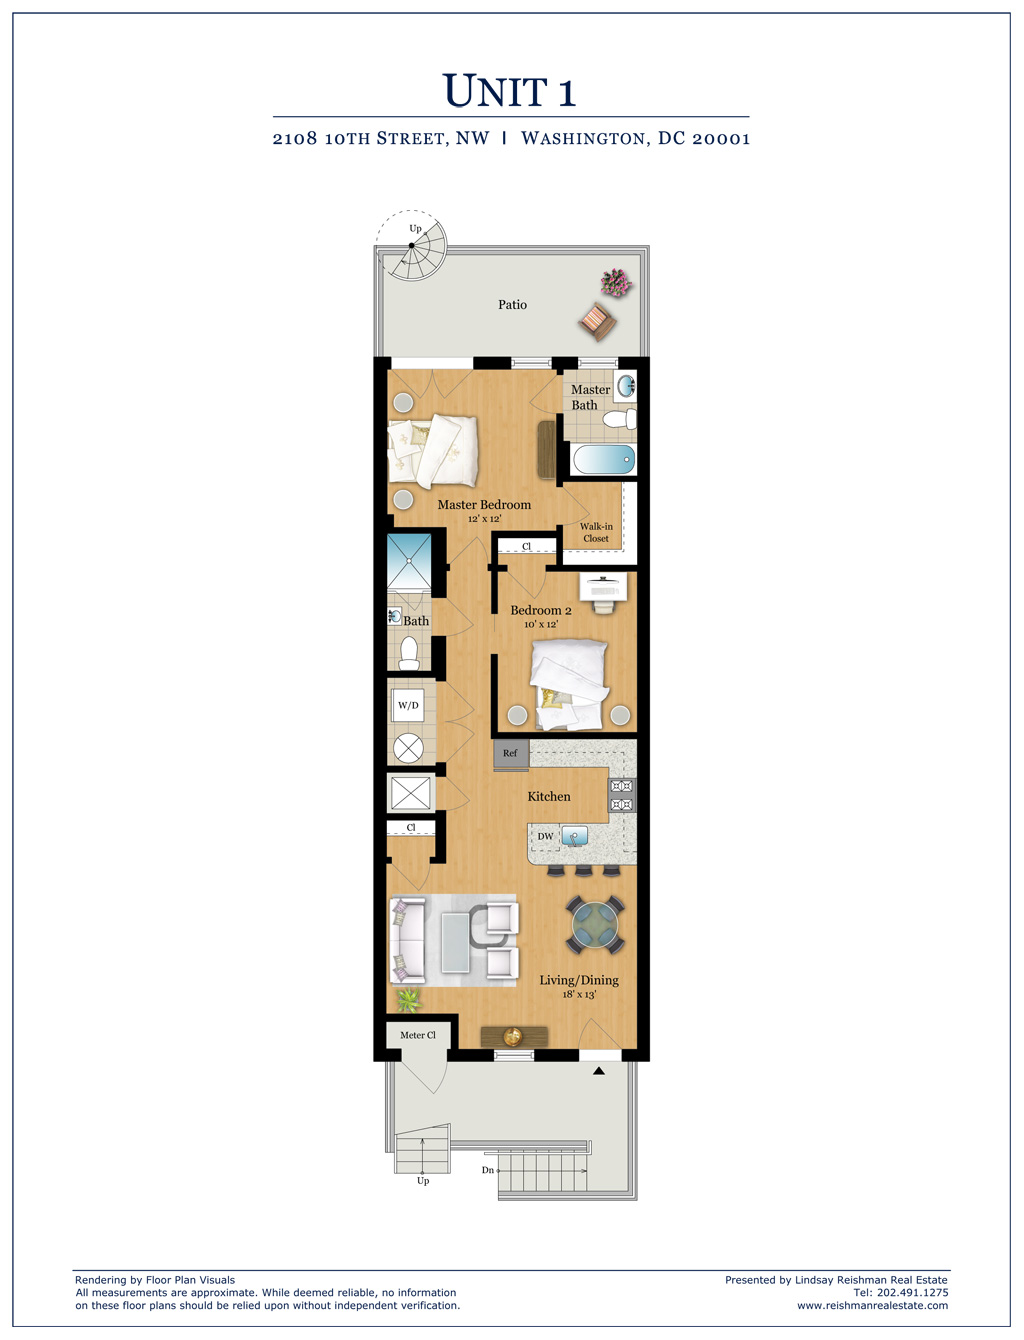 The Thompson Floor Plans A Washington Dc Development Firm Actually Prefer To Get Several Copies Of My Plan And Draw Each Were Going Make Few Small Tweaks Like Adding More Pocket Doors But General Layout Will Not Change